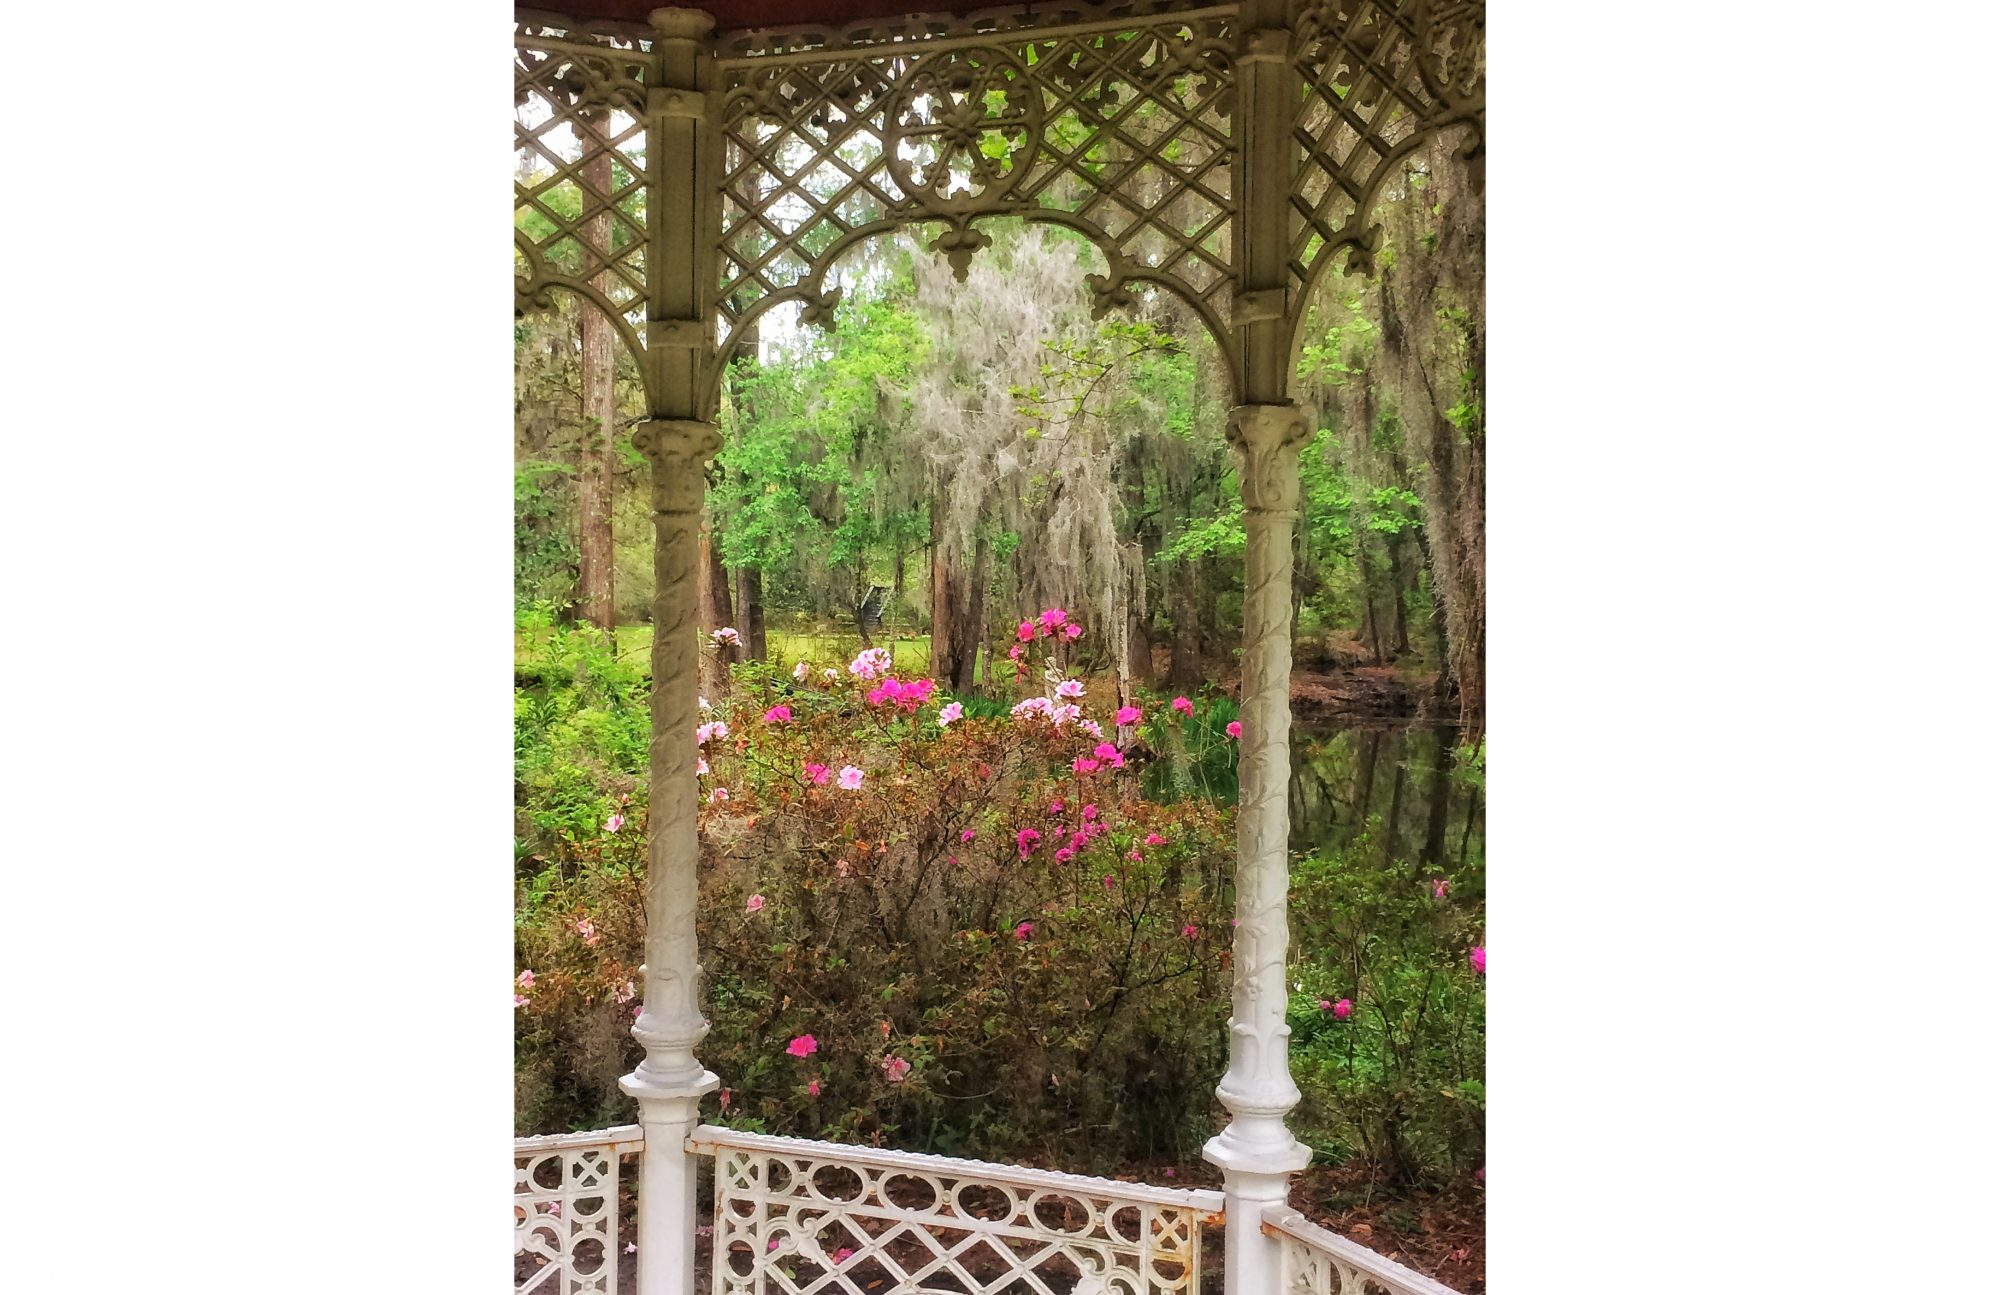 Find the Magic of Magnolia Gardens - Southern Living